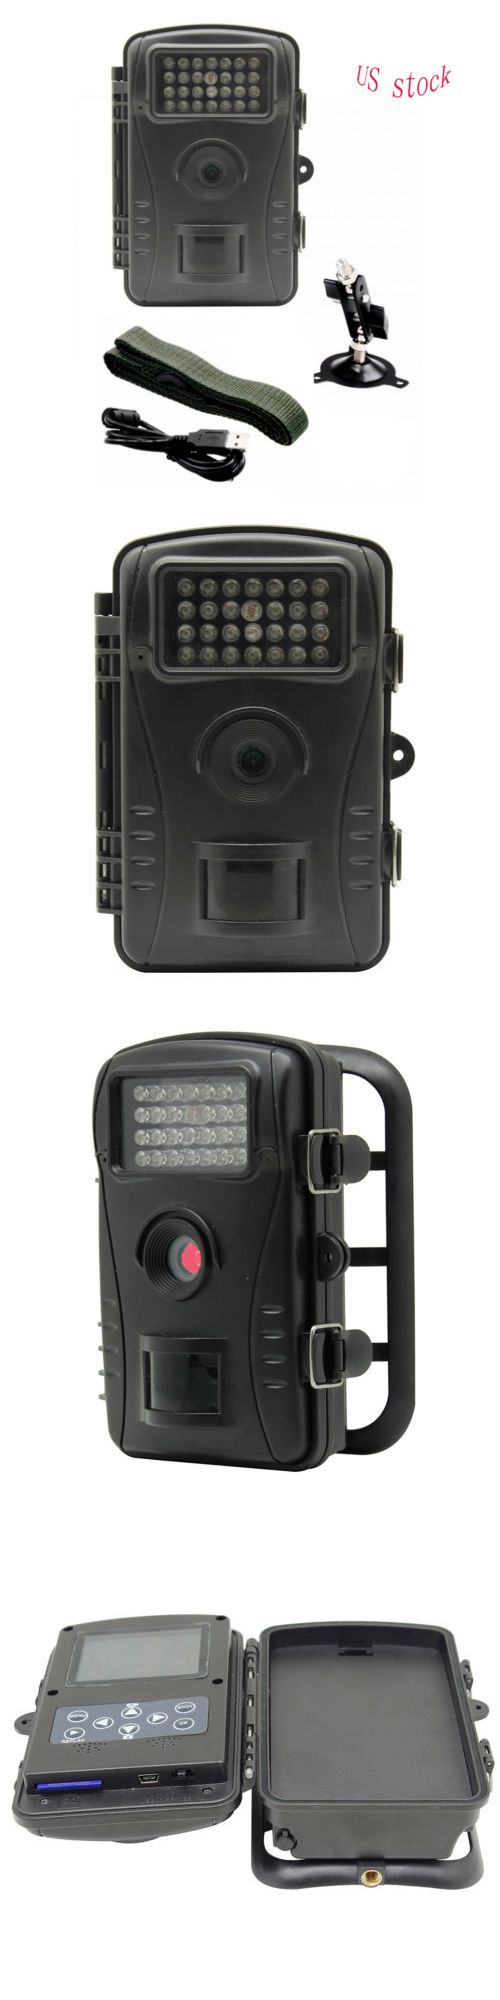 Other Vintage Electronics: 70°Wide Angle 26 Pcs Ir Leds 720P Waterproof Pir Hunting Trail Camera Wildlife -> BUY IT NOW ONLY: $59.39 on eBay!